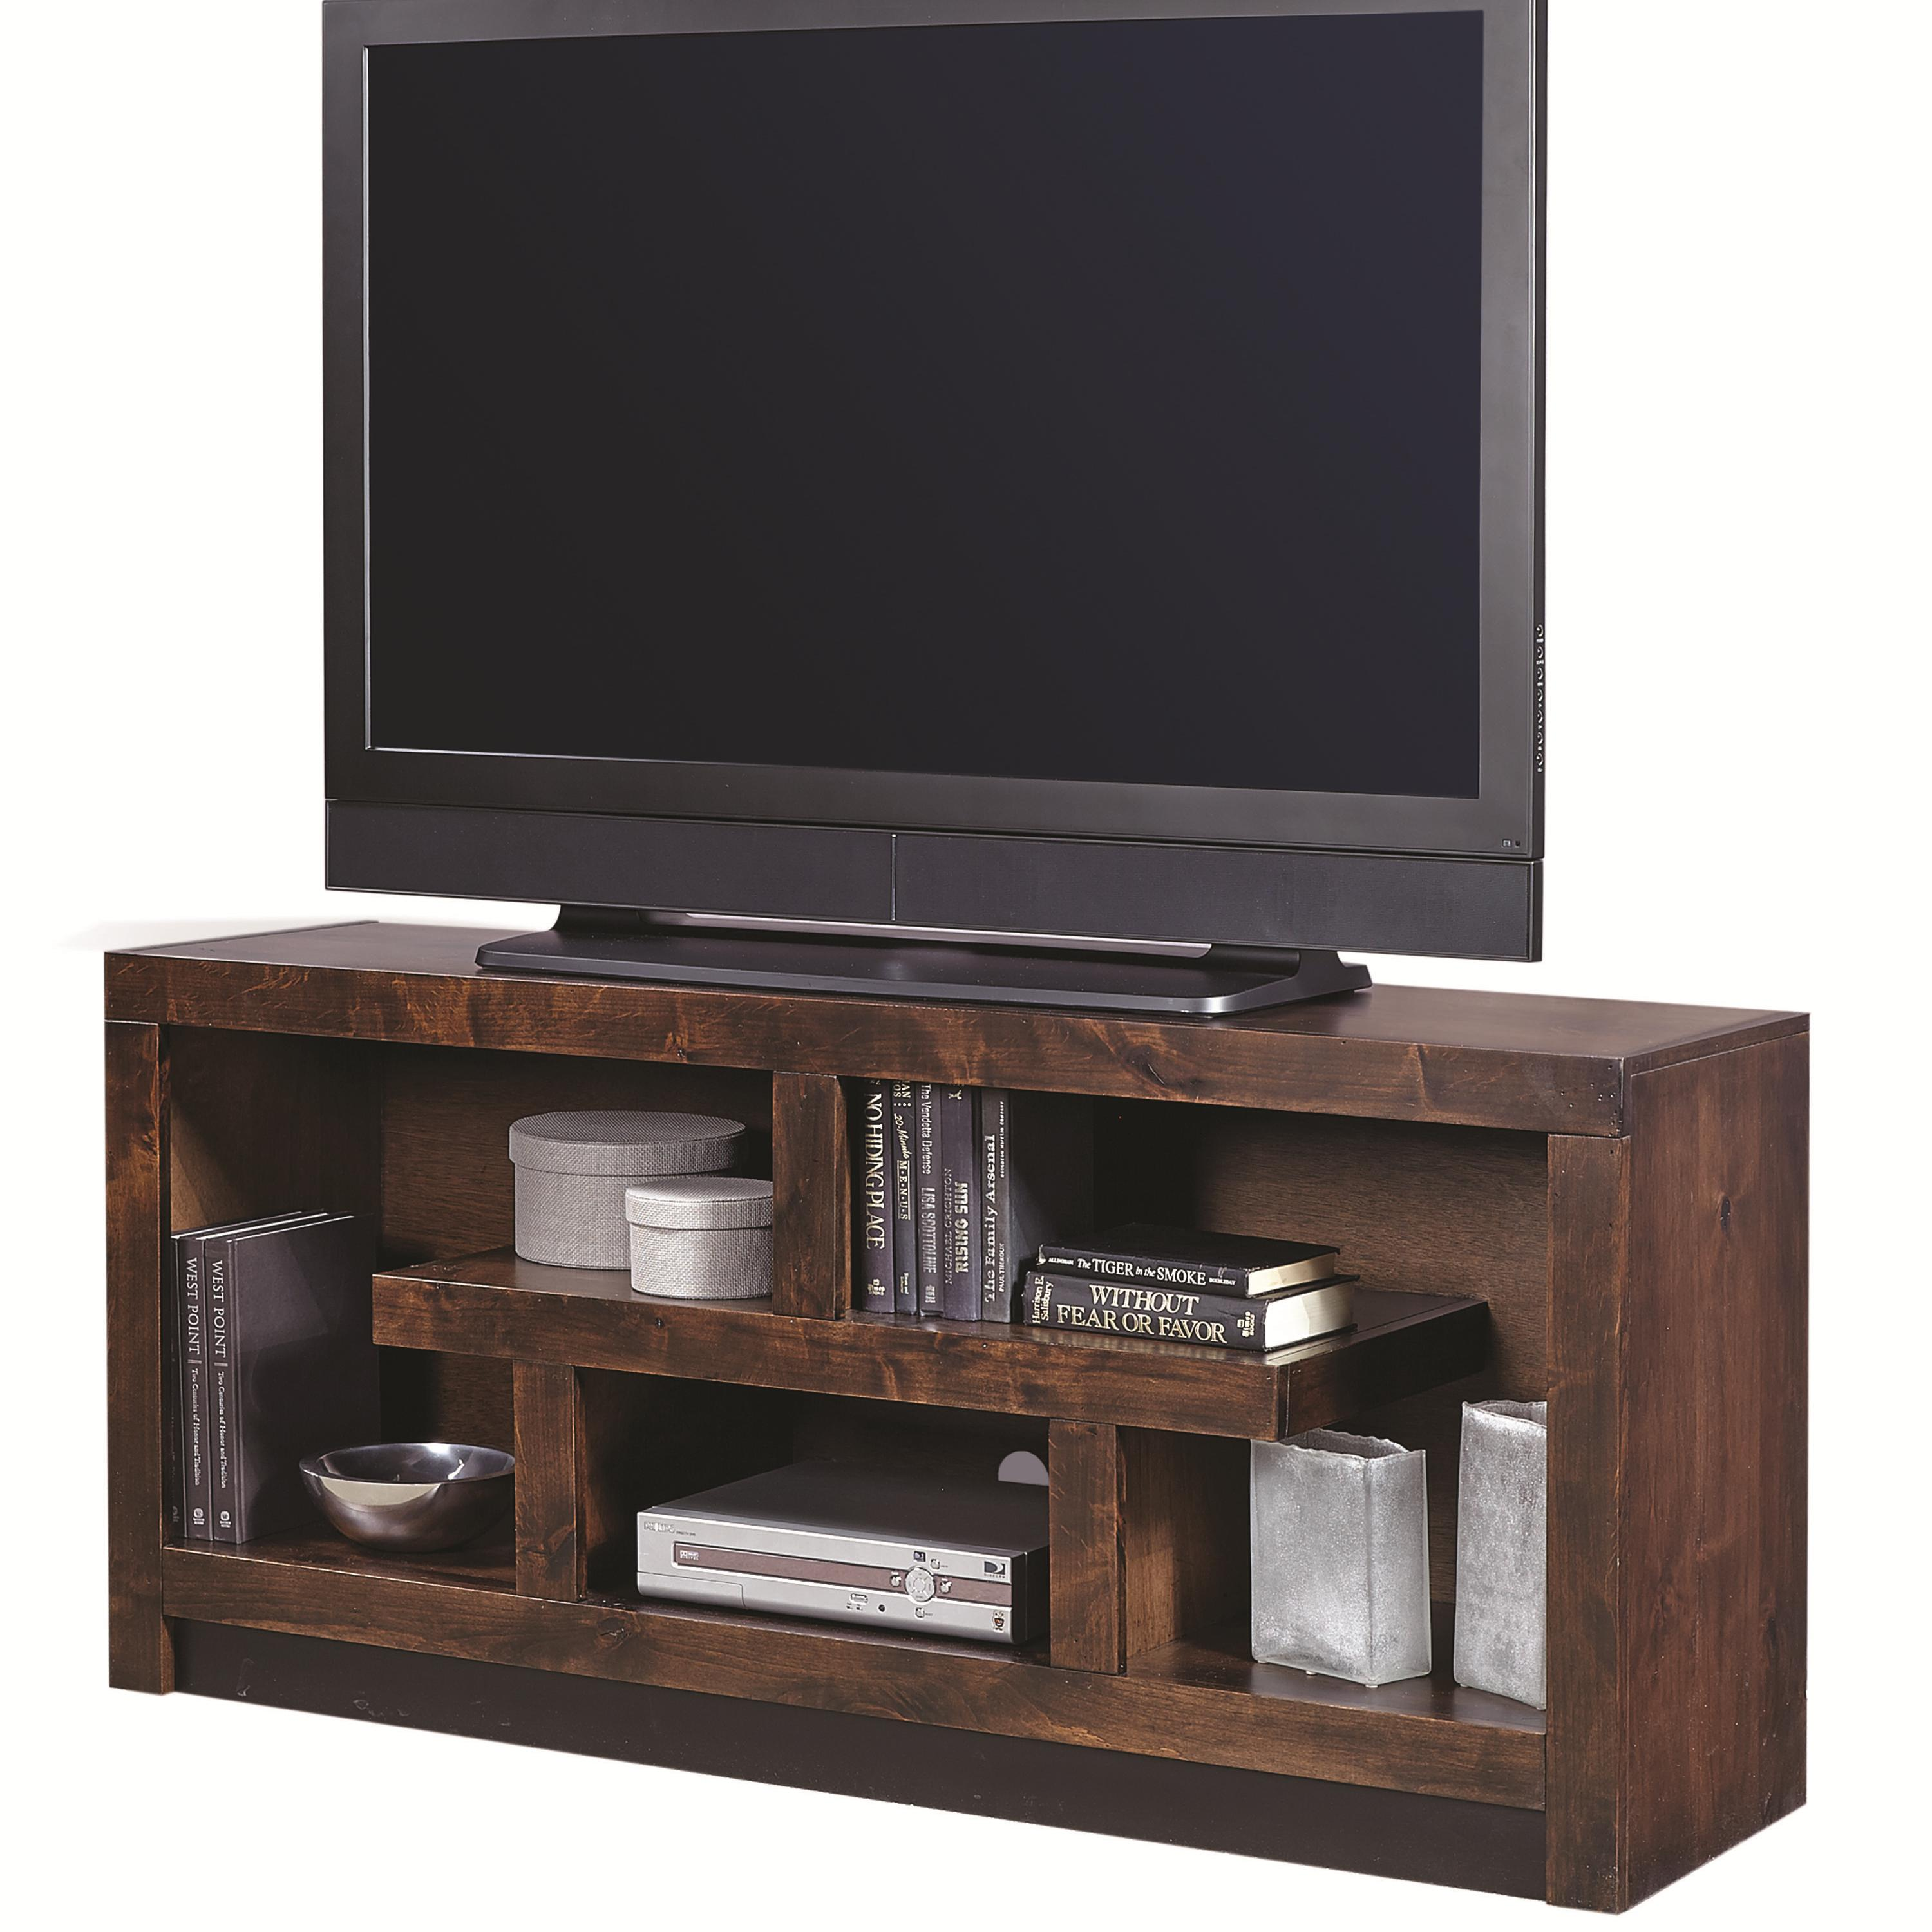 Aspenhome Contemporary Alder TV Console  - Item Number: DL1029-TOB